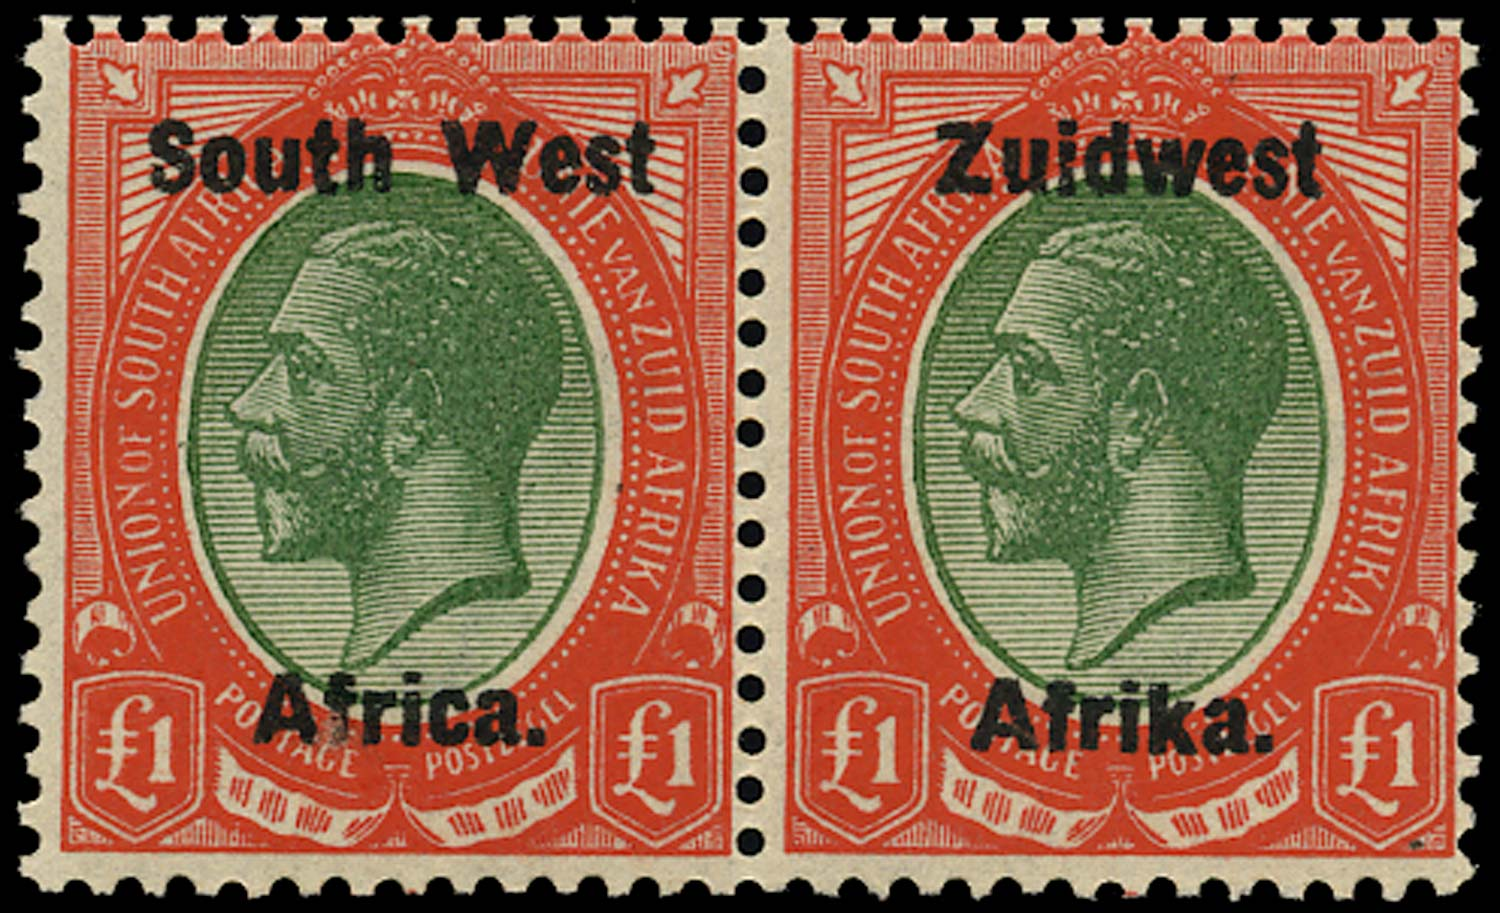 SOUTH WEST AFRICA 1923  SG27 Mint unmounted £1 green and red overprint setting III